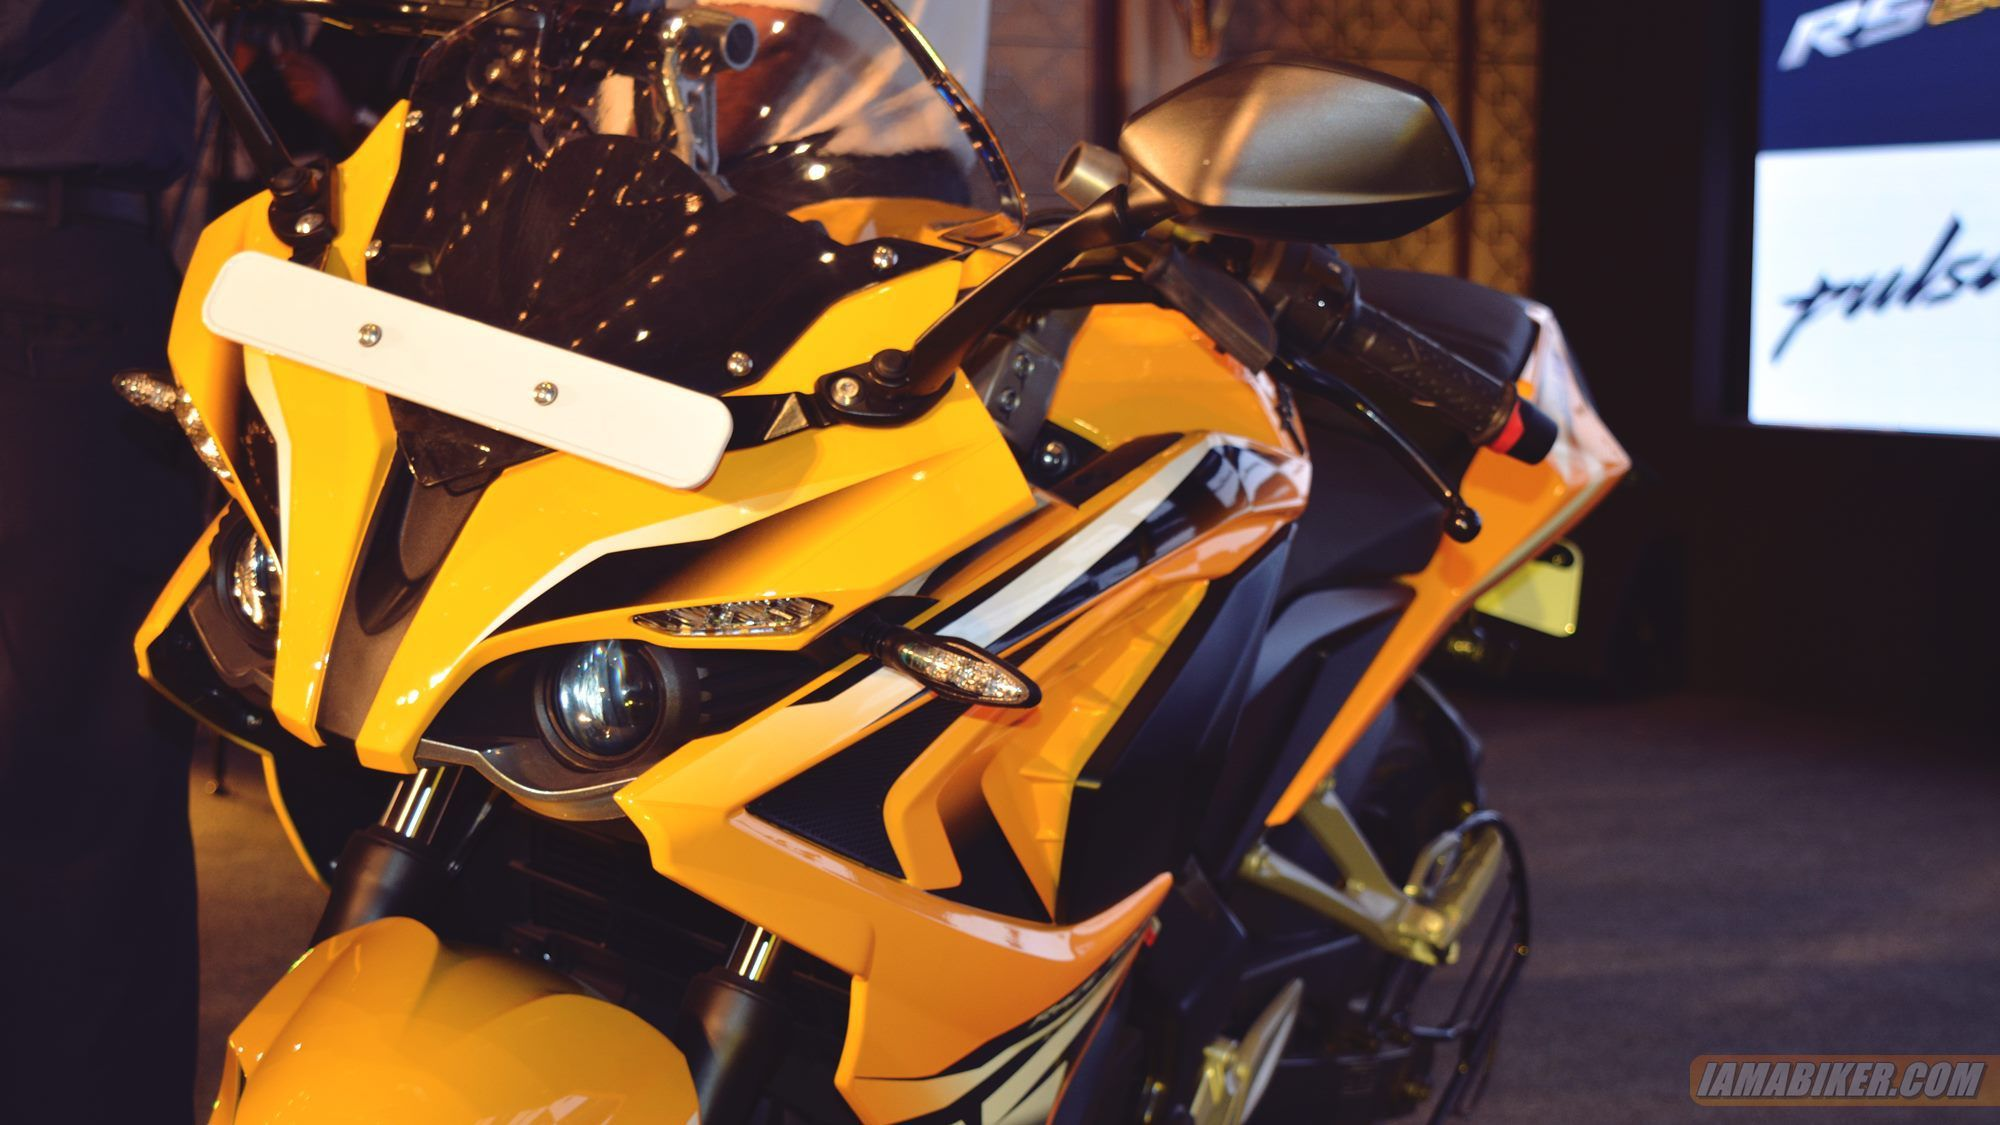 Pulsar RS 200 priced at 1.3 lakh for ABS version Sport